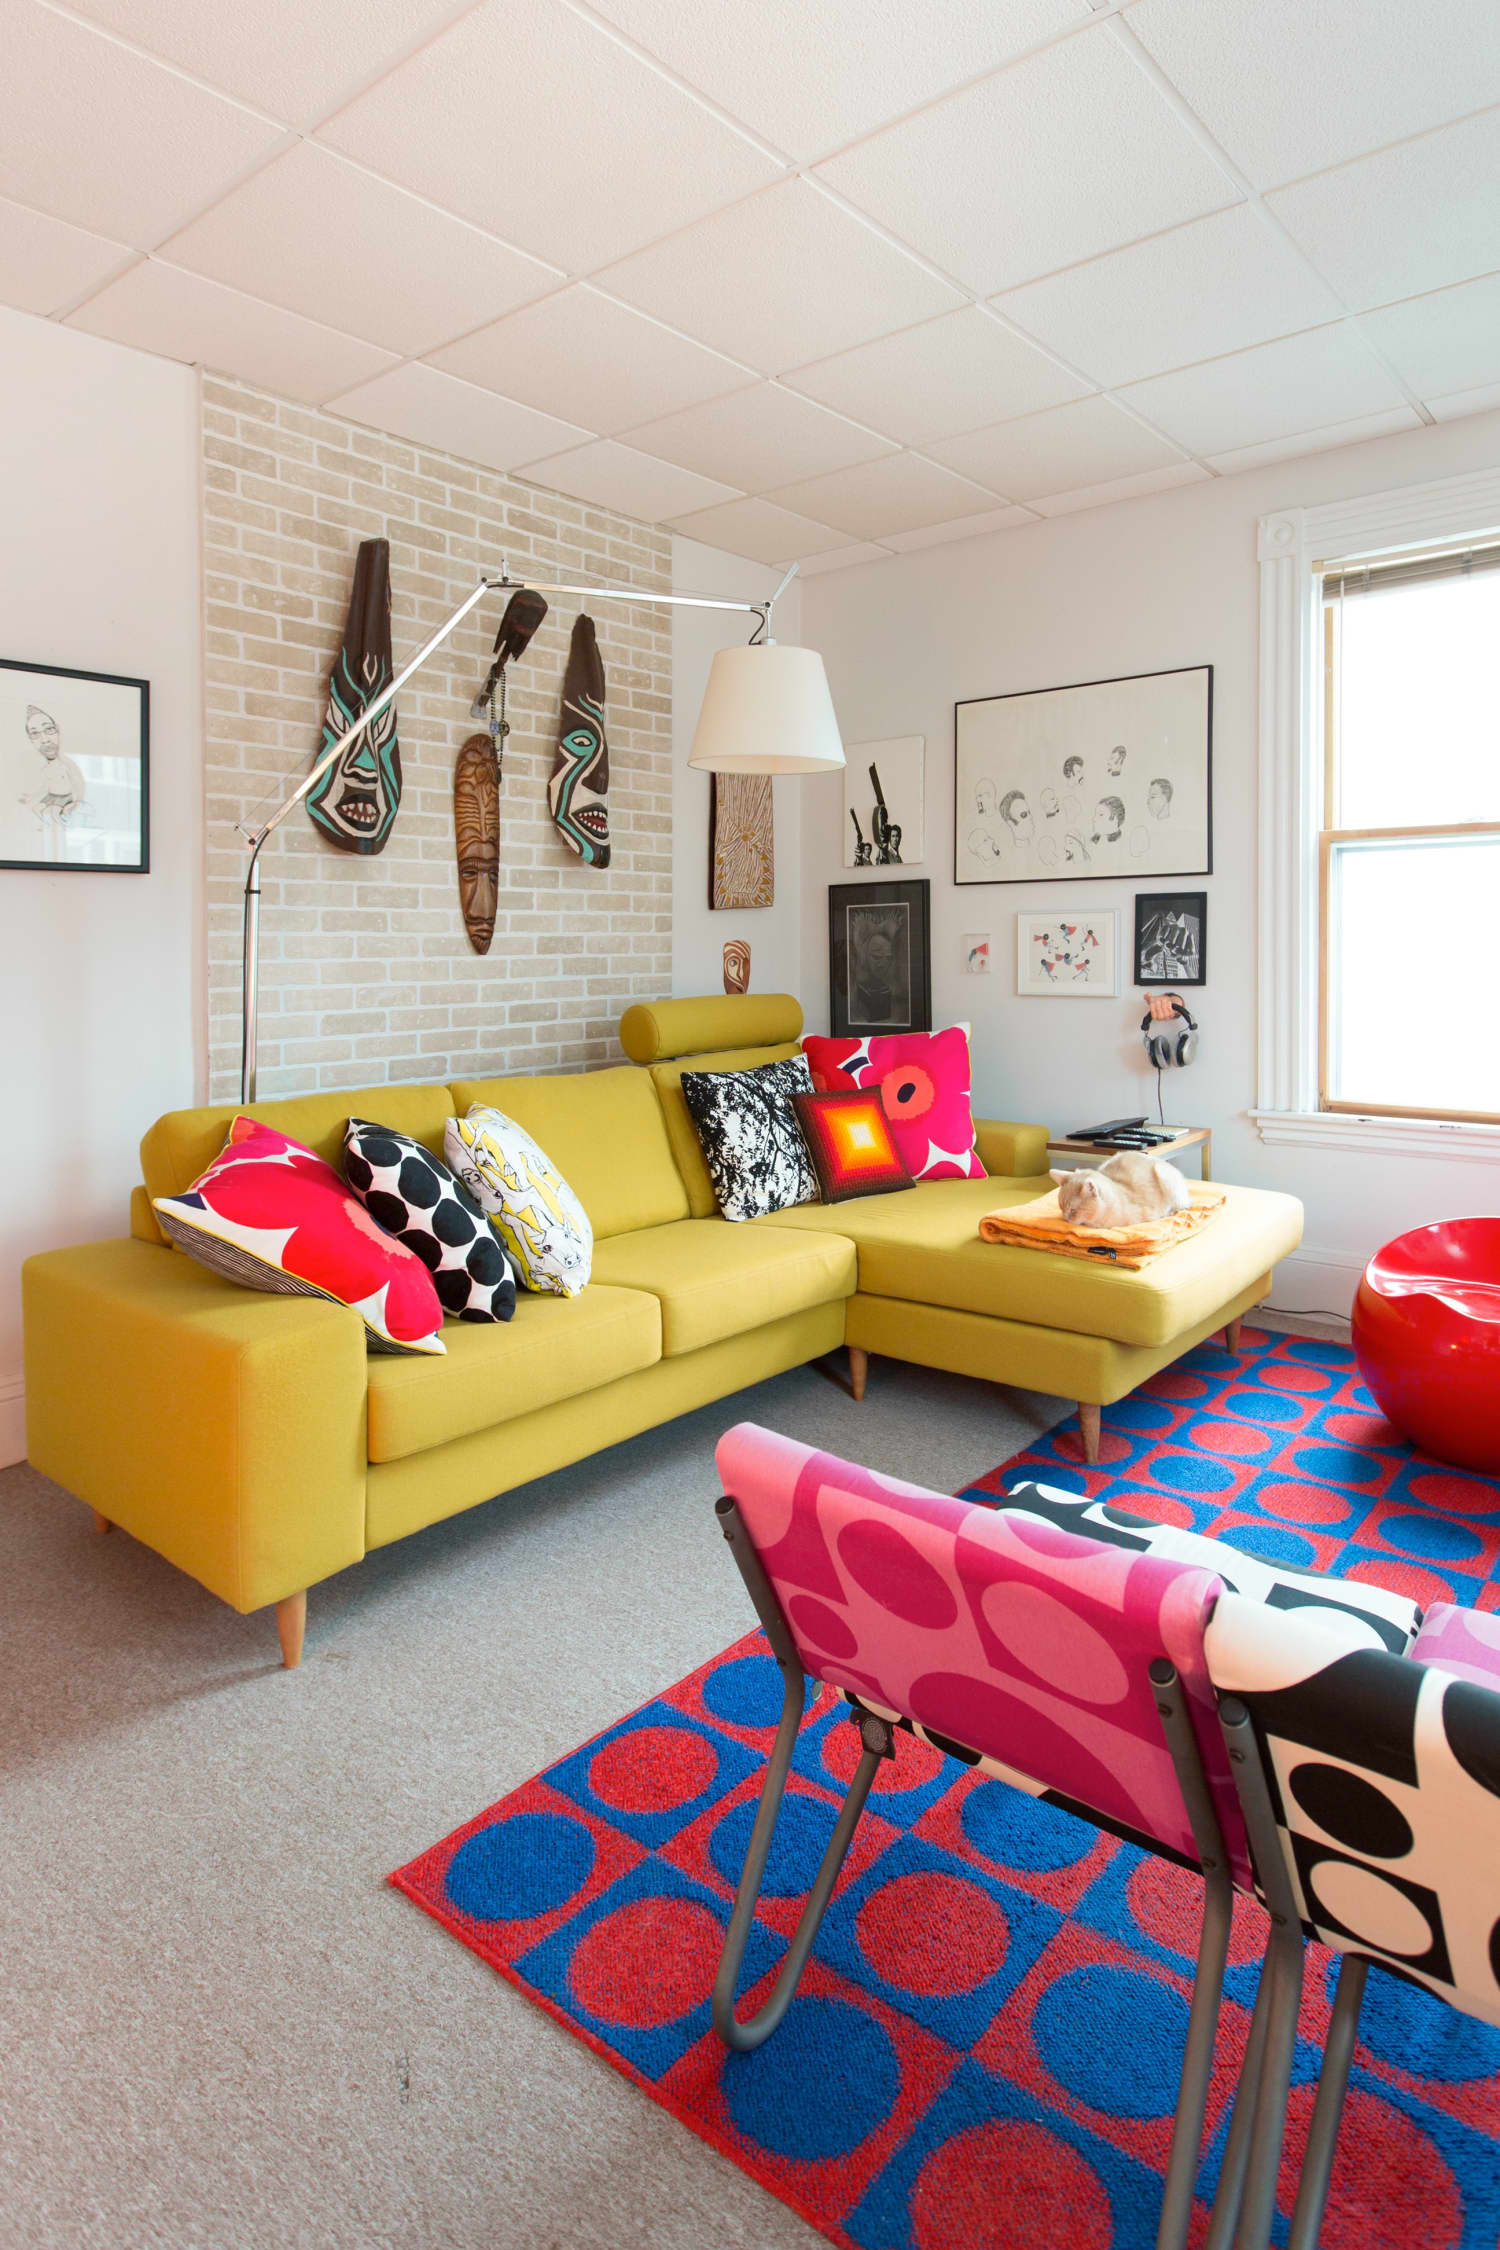 Design Checkup: How To Make Any Room Feel Less Busy